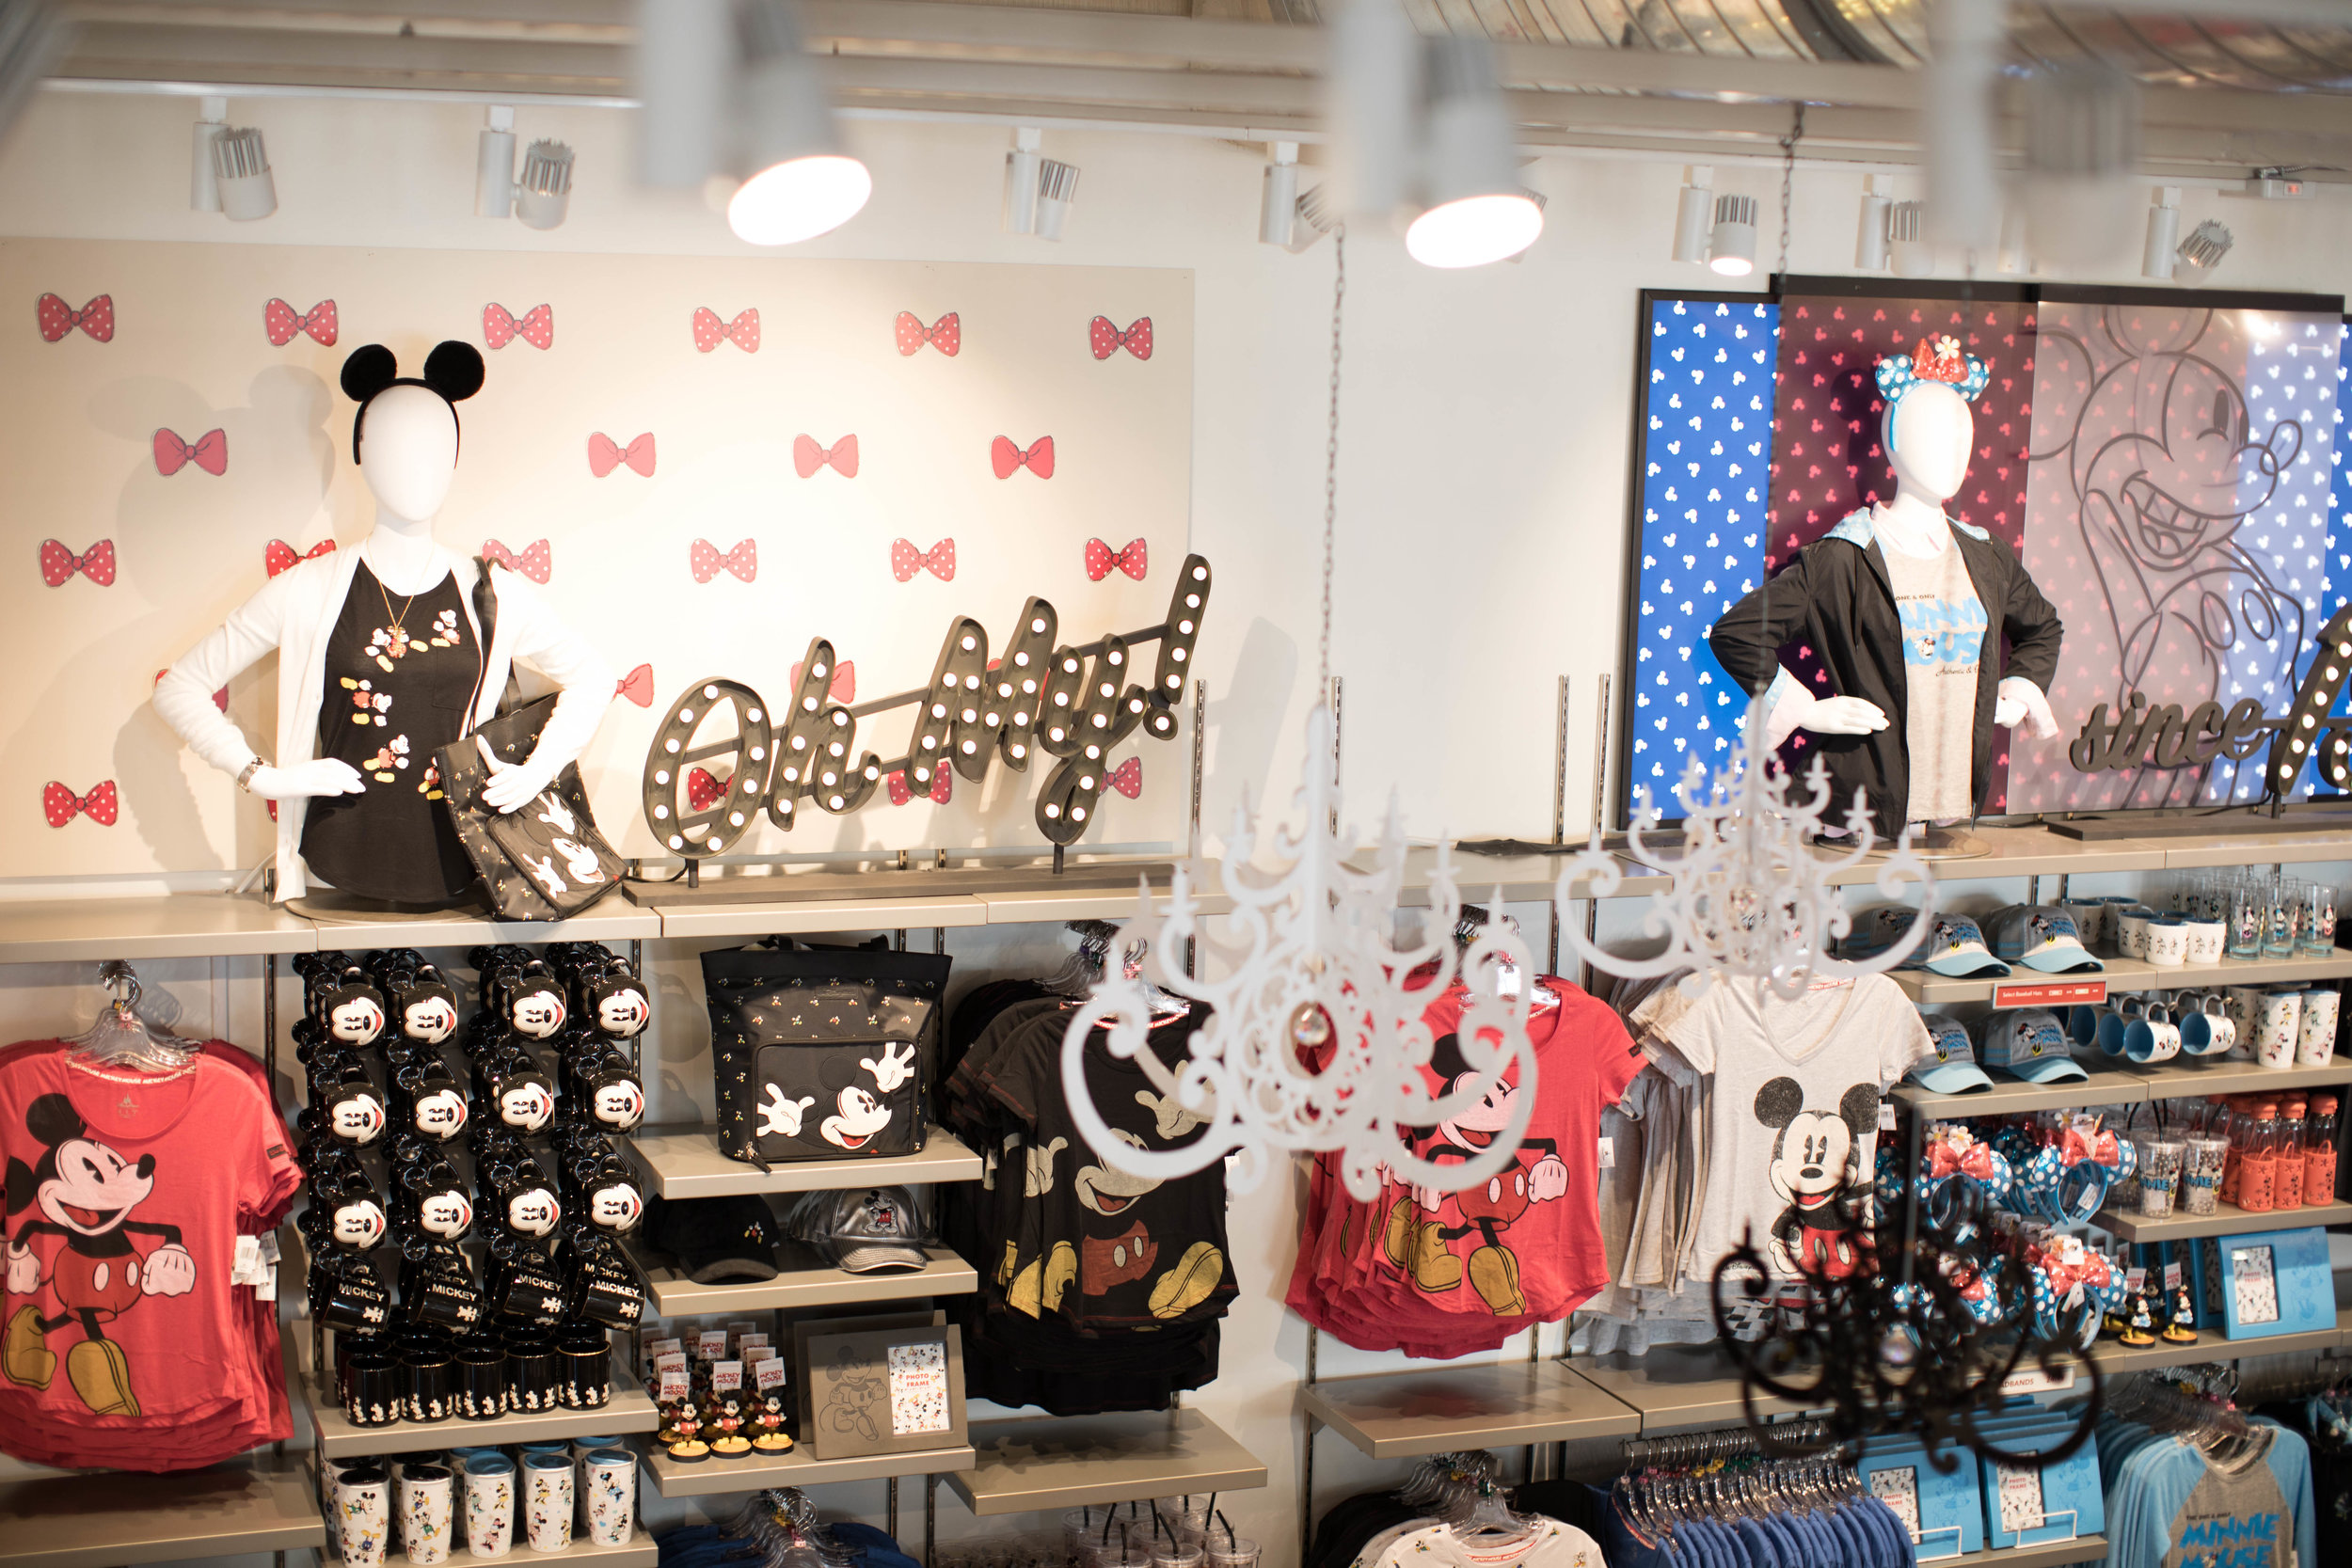 Our most popular White Chandeliers were added to the front part of the store, near the cash registers. They compliment the black and white decor in the merchandise.